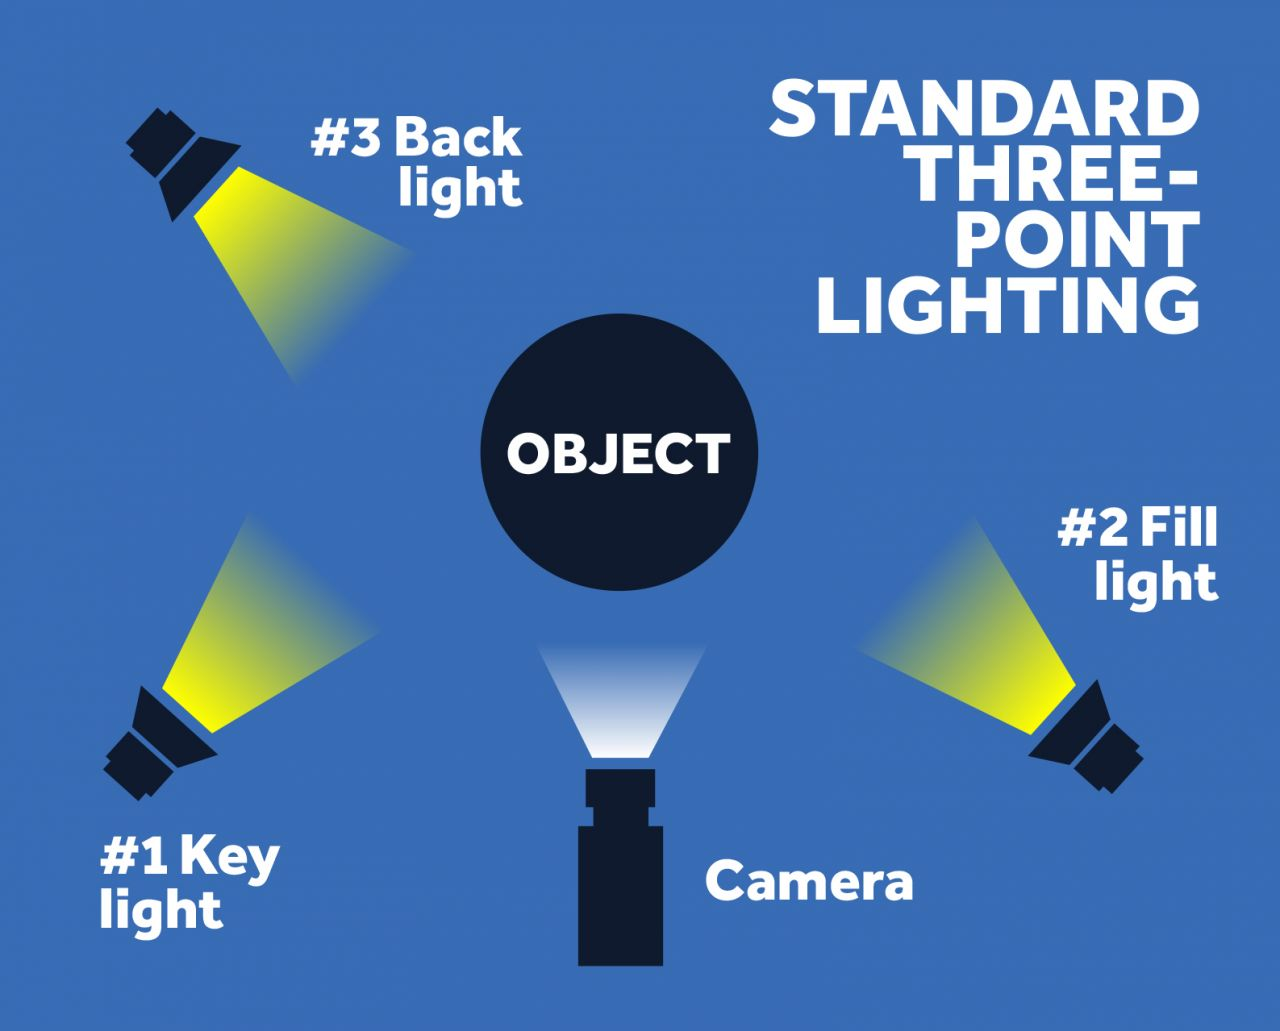 The Best Video Lighting Kits To Make Your Videos Look Pro